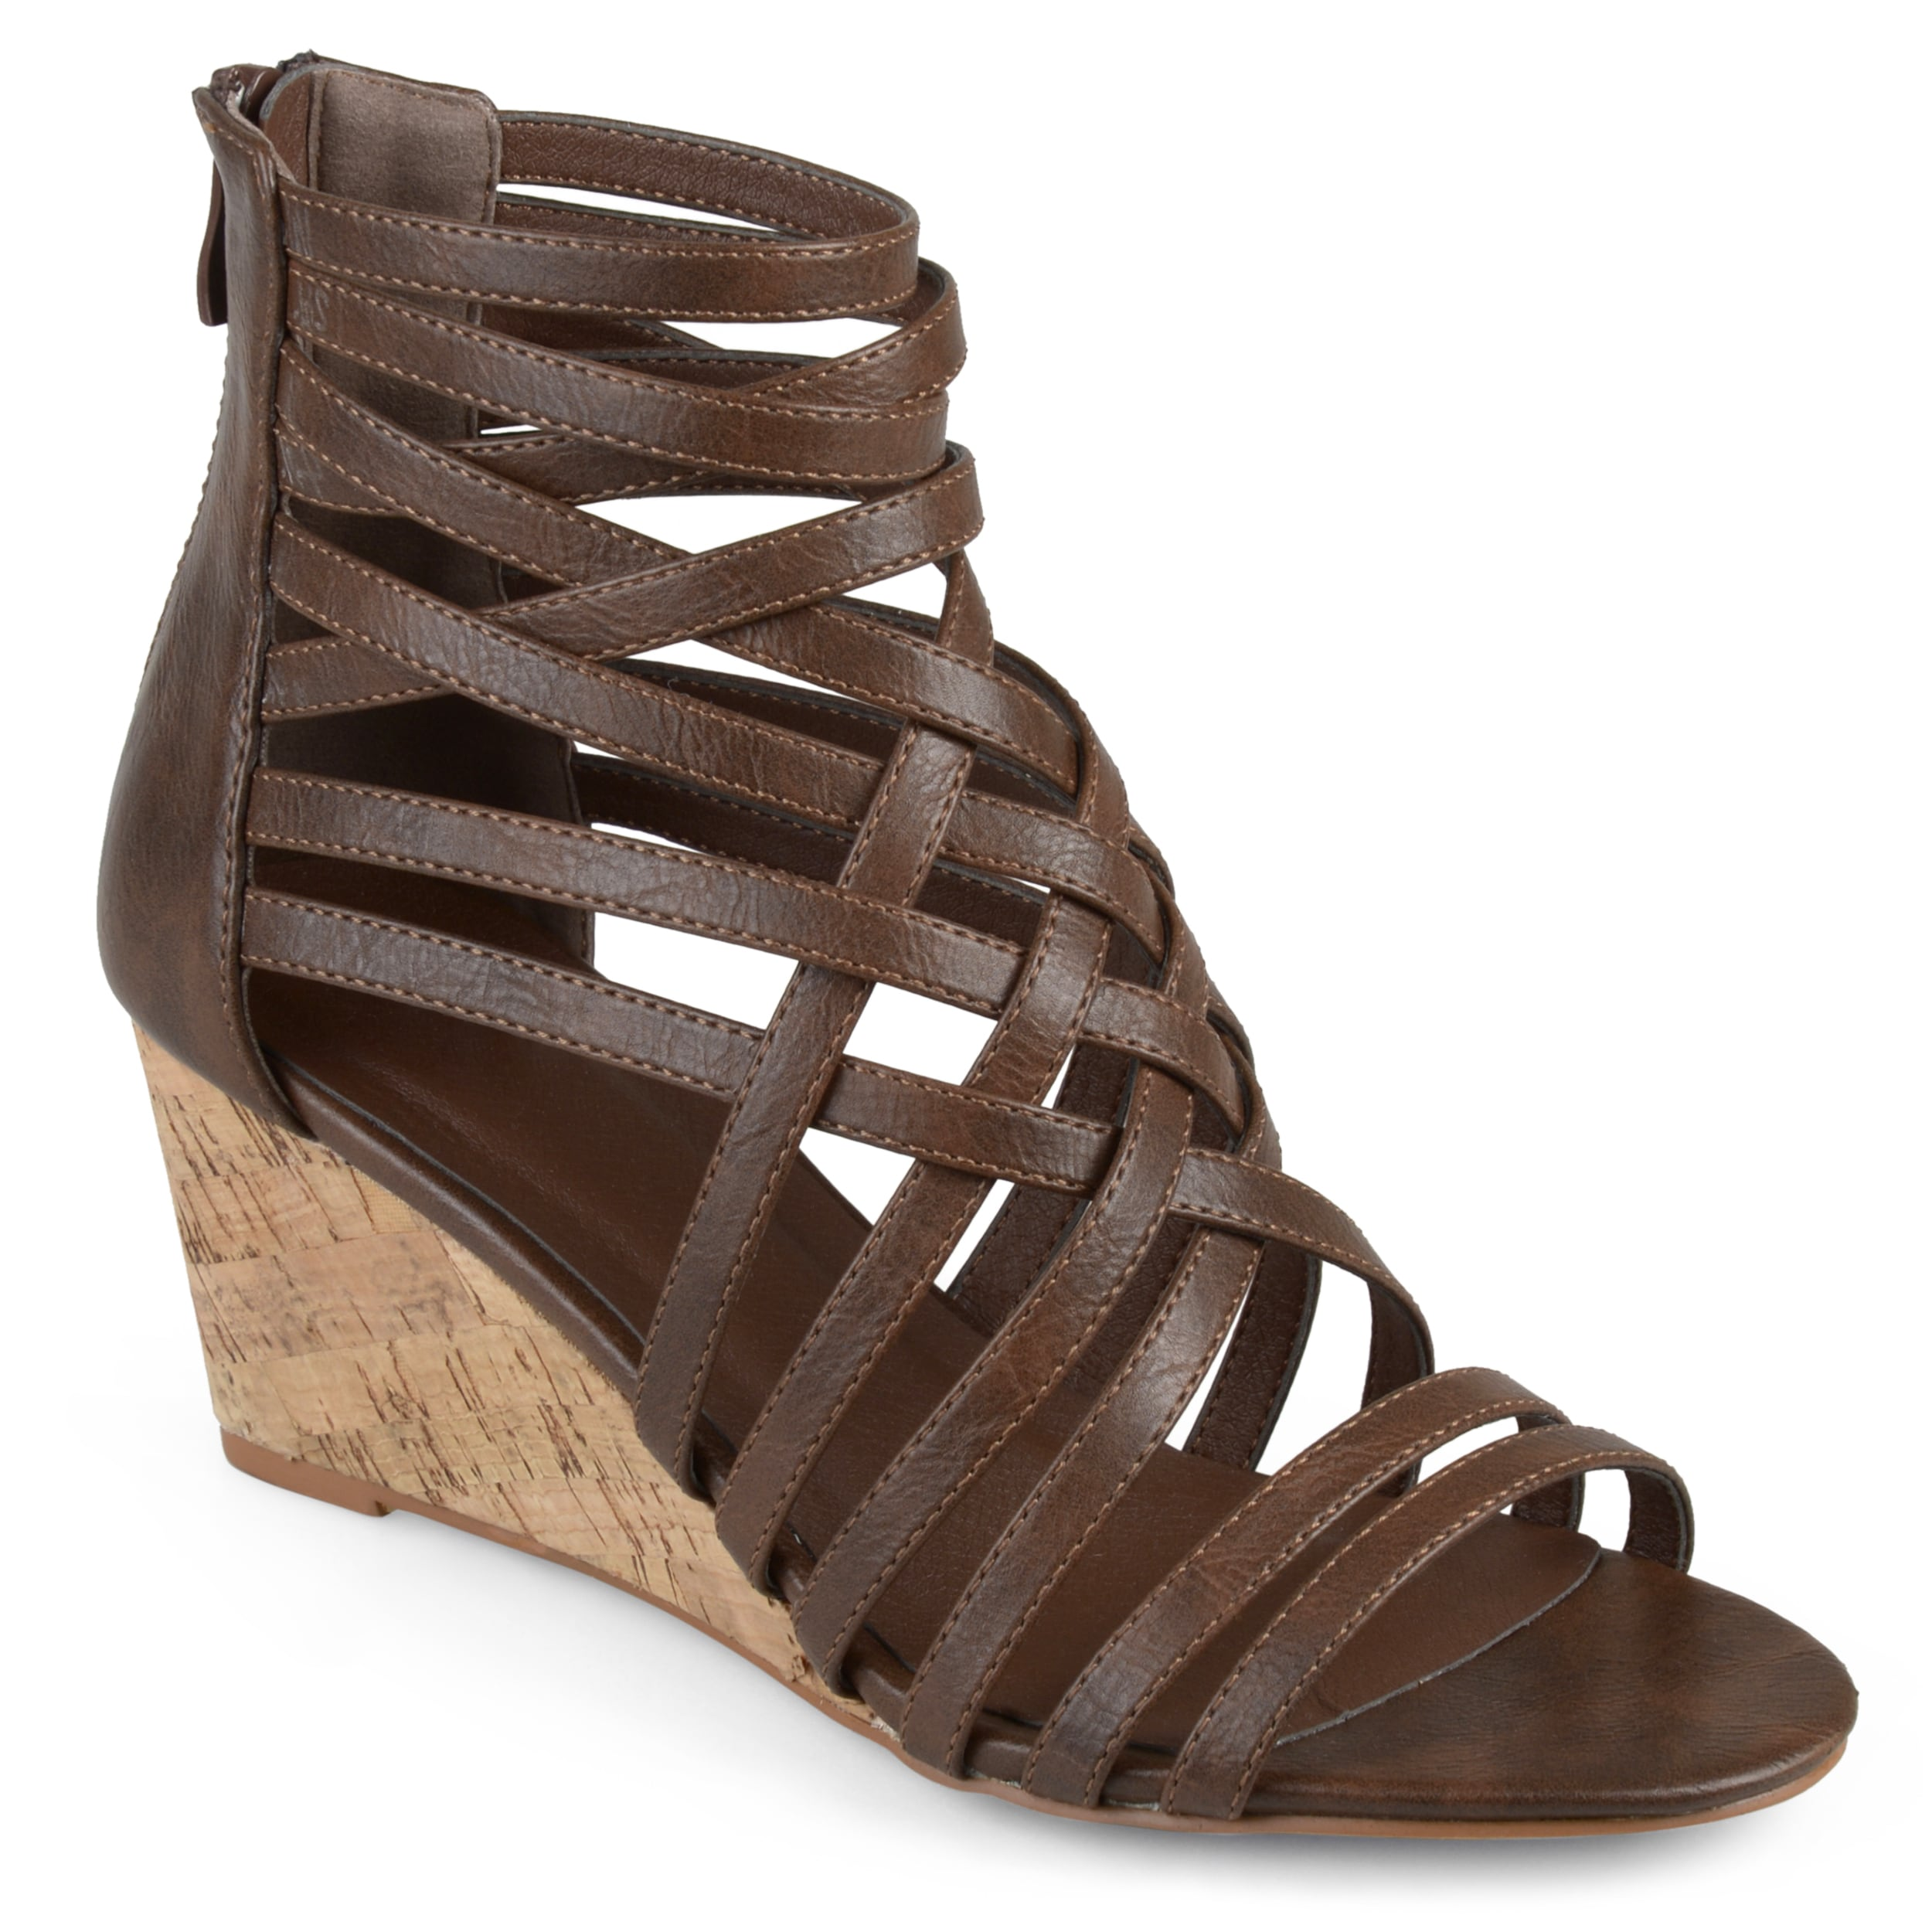 3b079be2737 Shop Journee Collection Women s  Twyla  Strappy Faux Leather Wedges ...